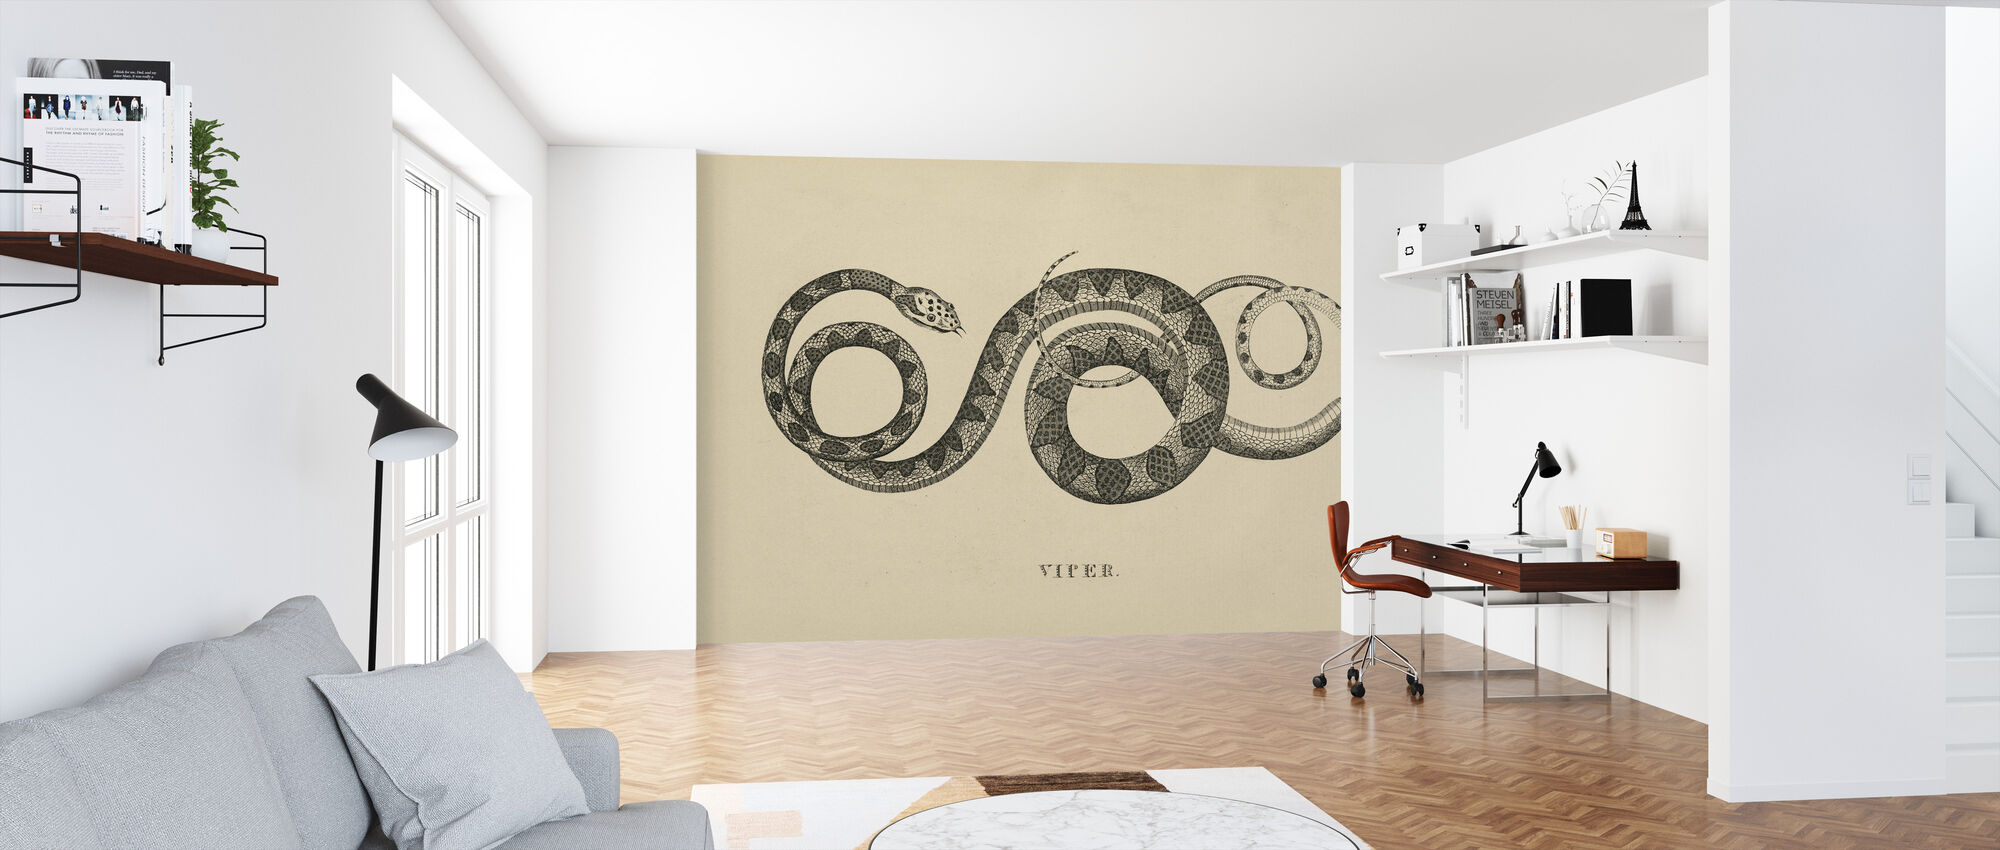 Vintage Viper - Wallpaper - Office